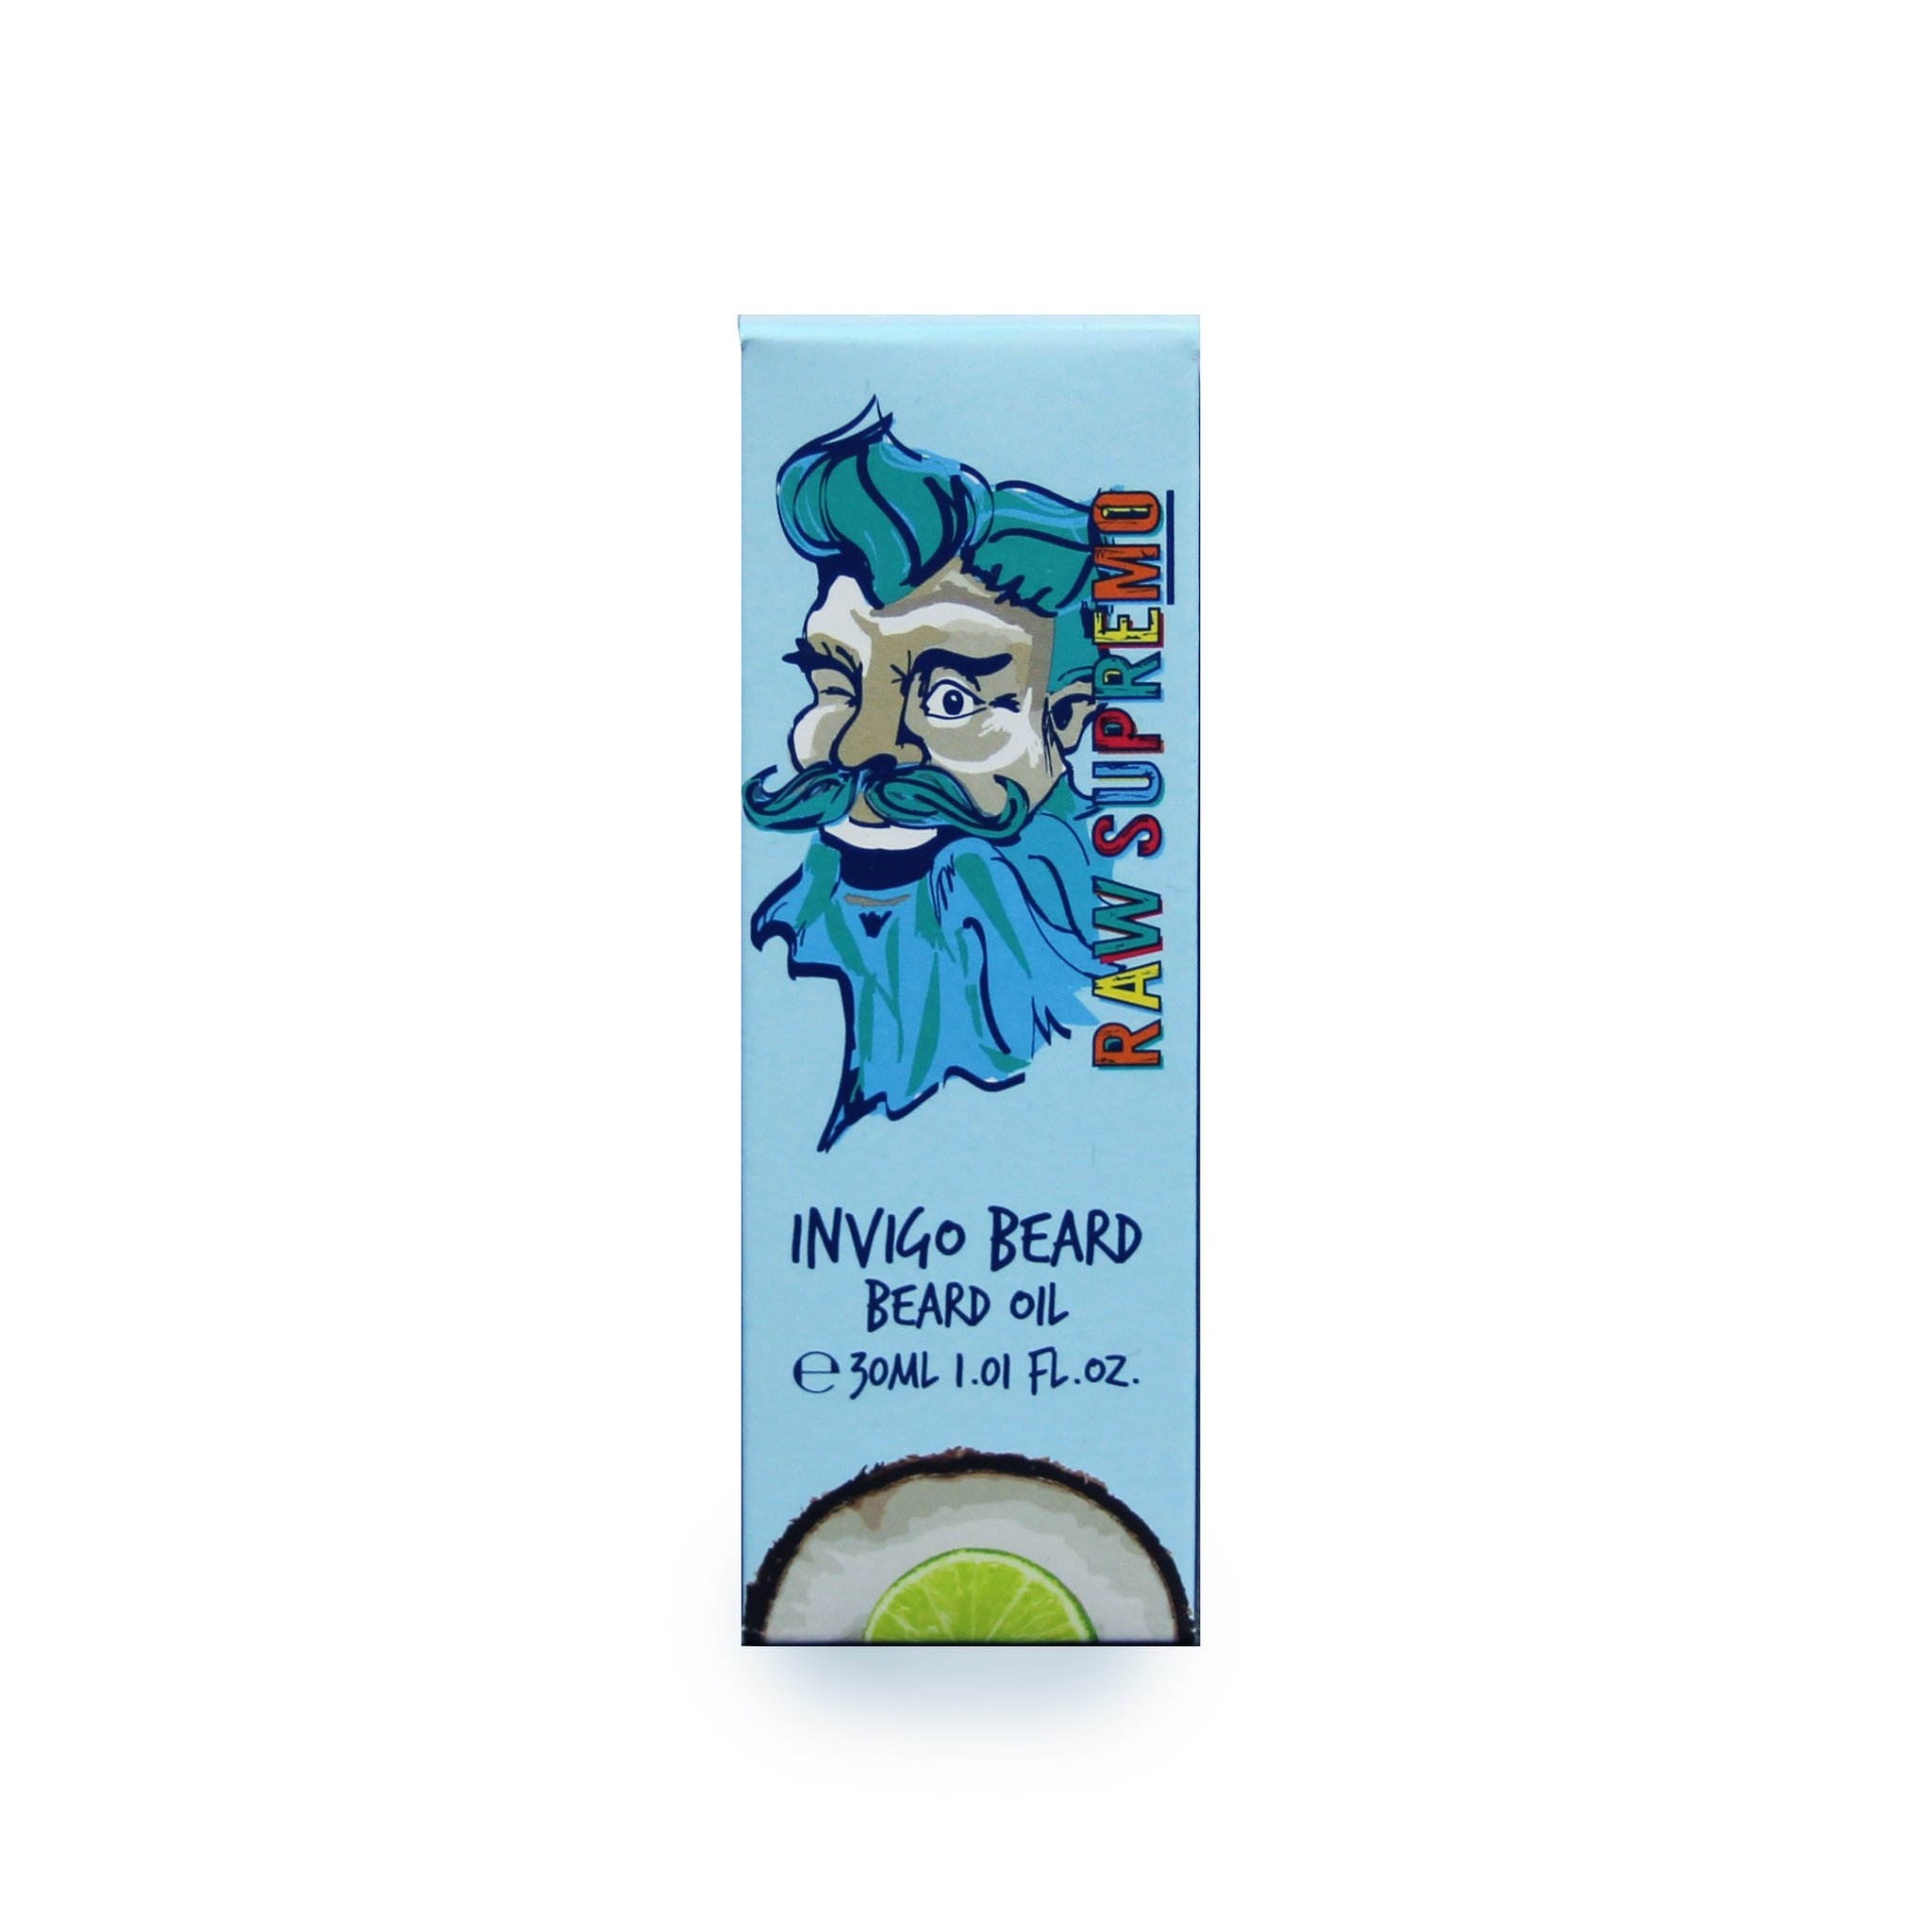 Raw Supremo - Invigo Beard Beard Oil - Olej na bradu, 30ml